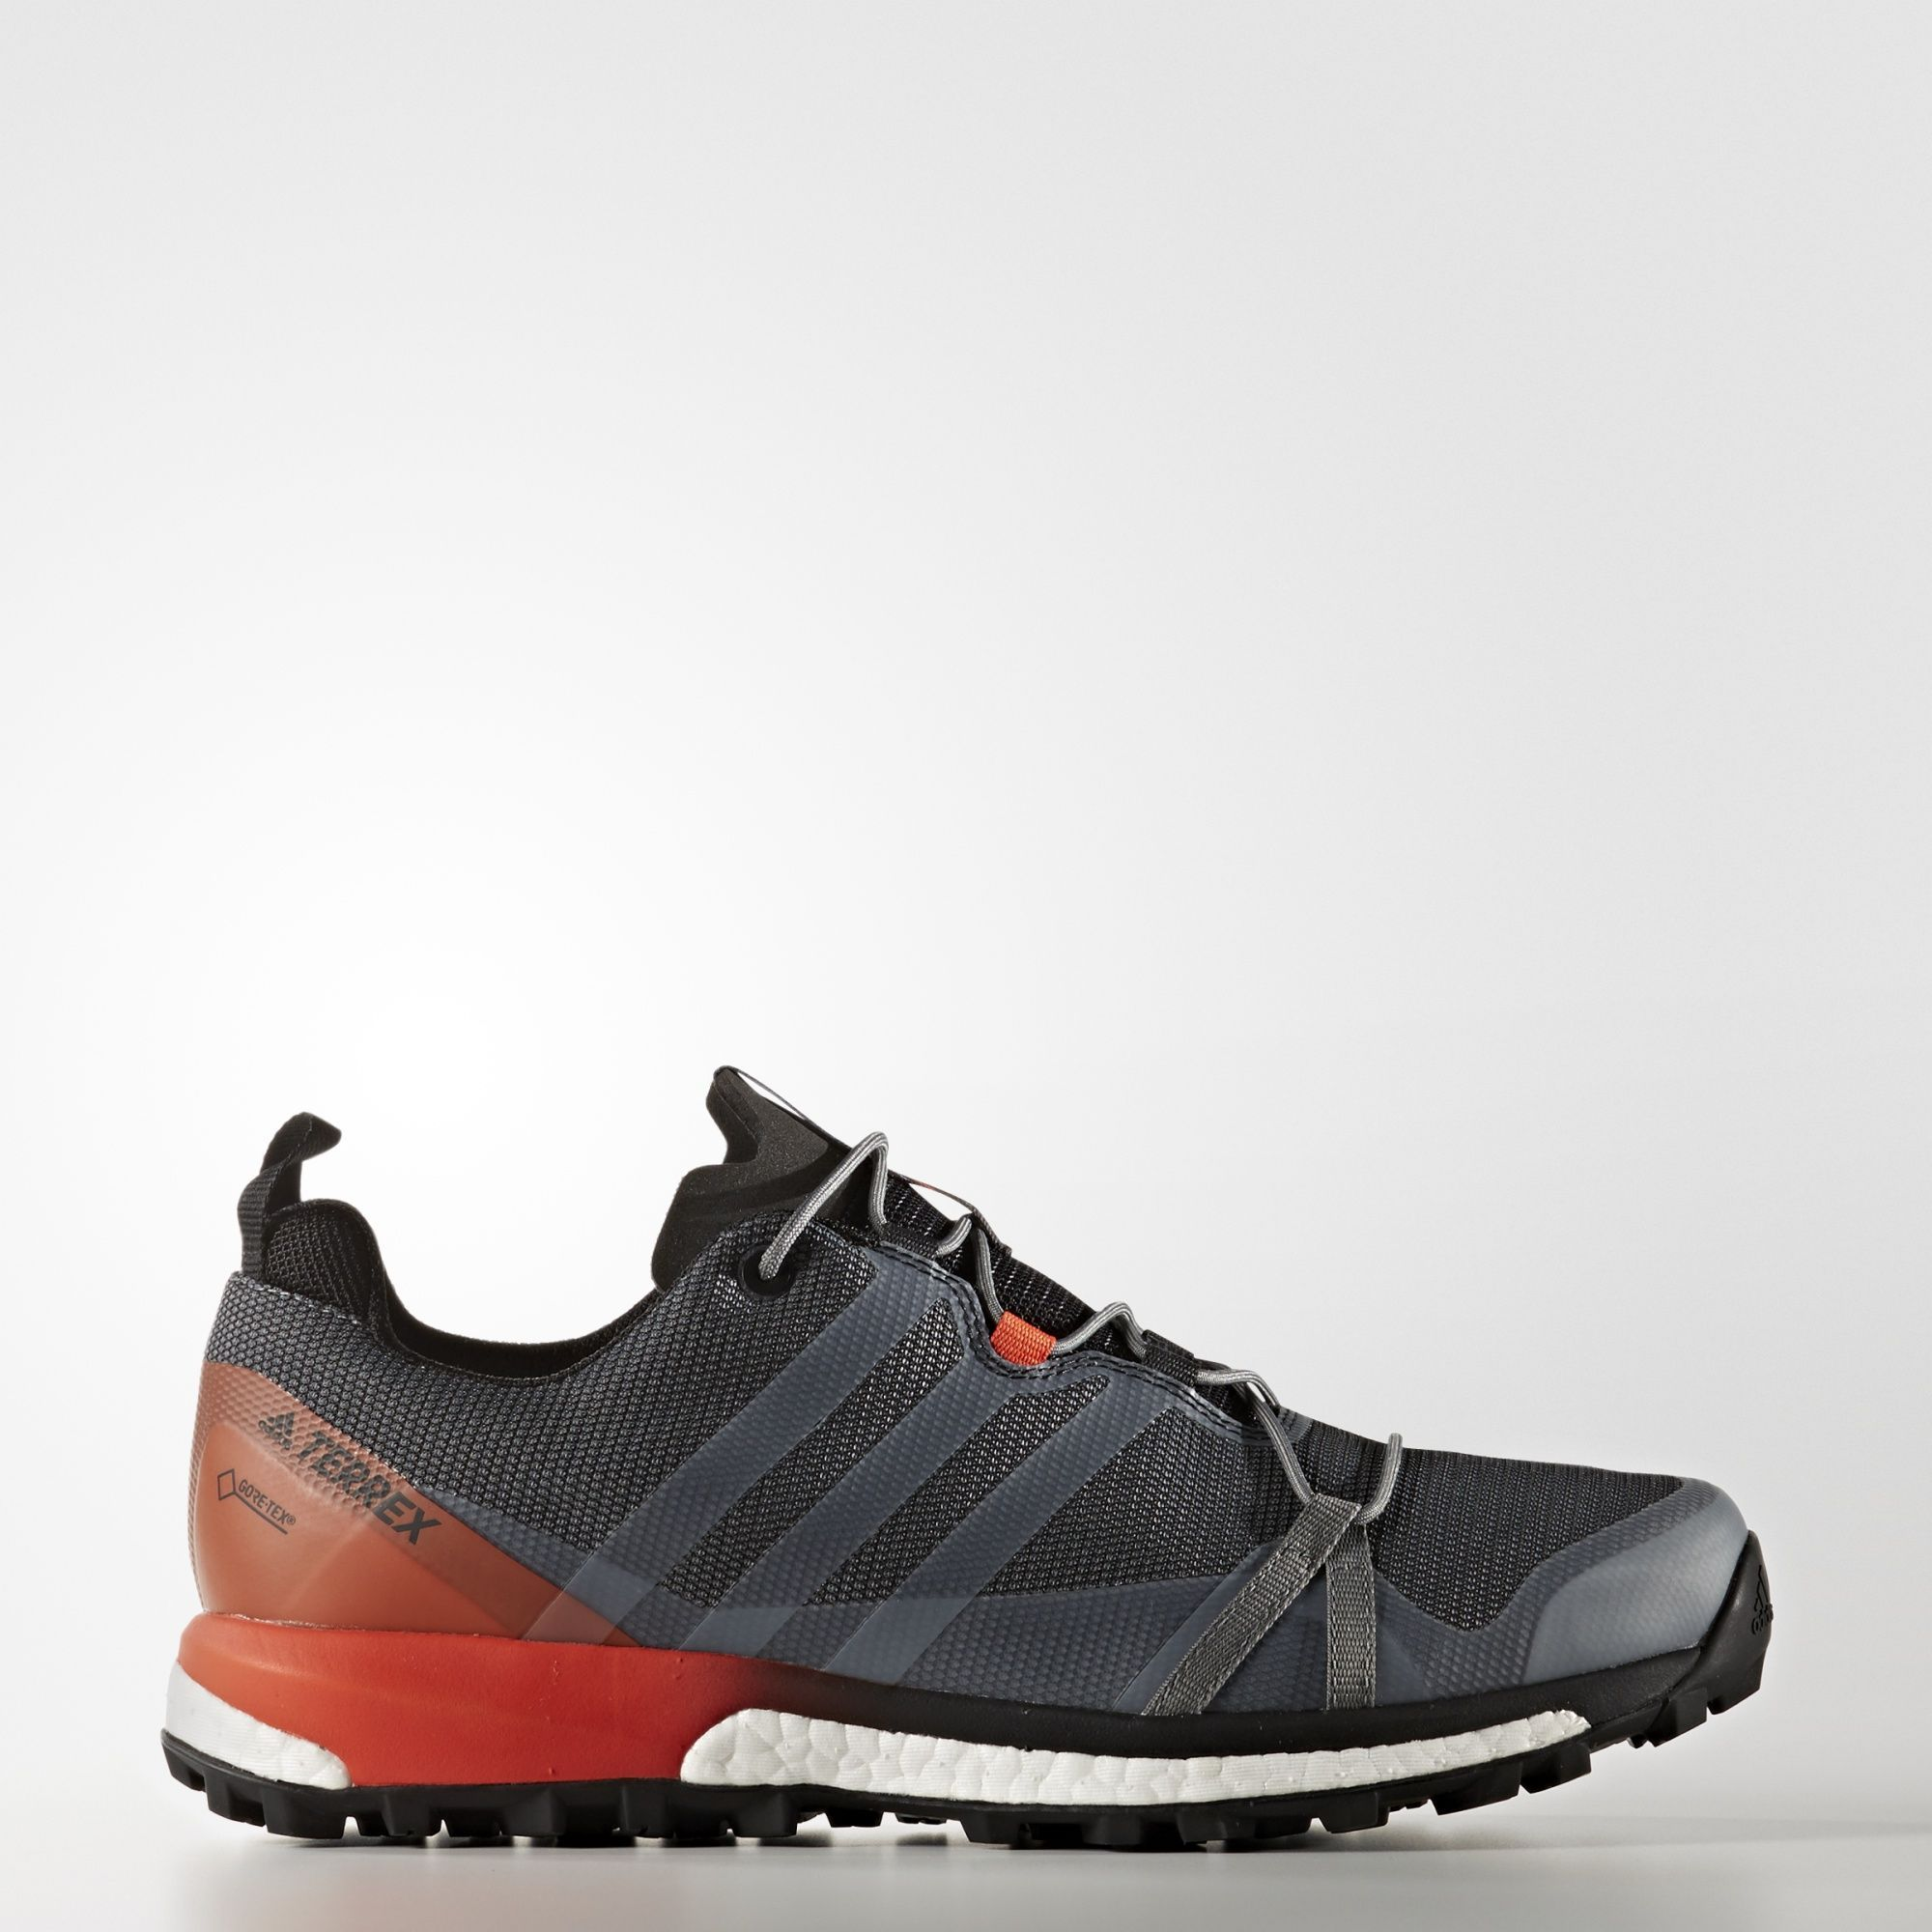 adidas TERREX Agravic GTX Shoes   Shoes, Sport shoes, Sneakers